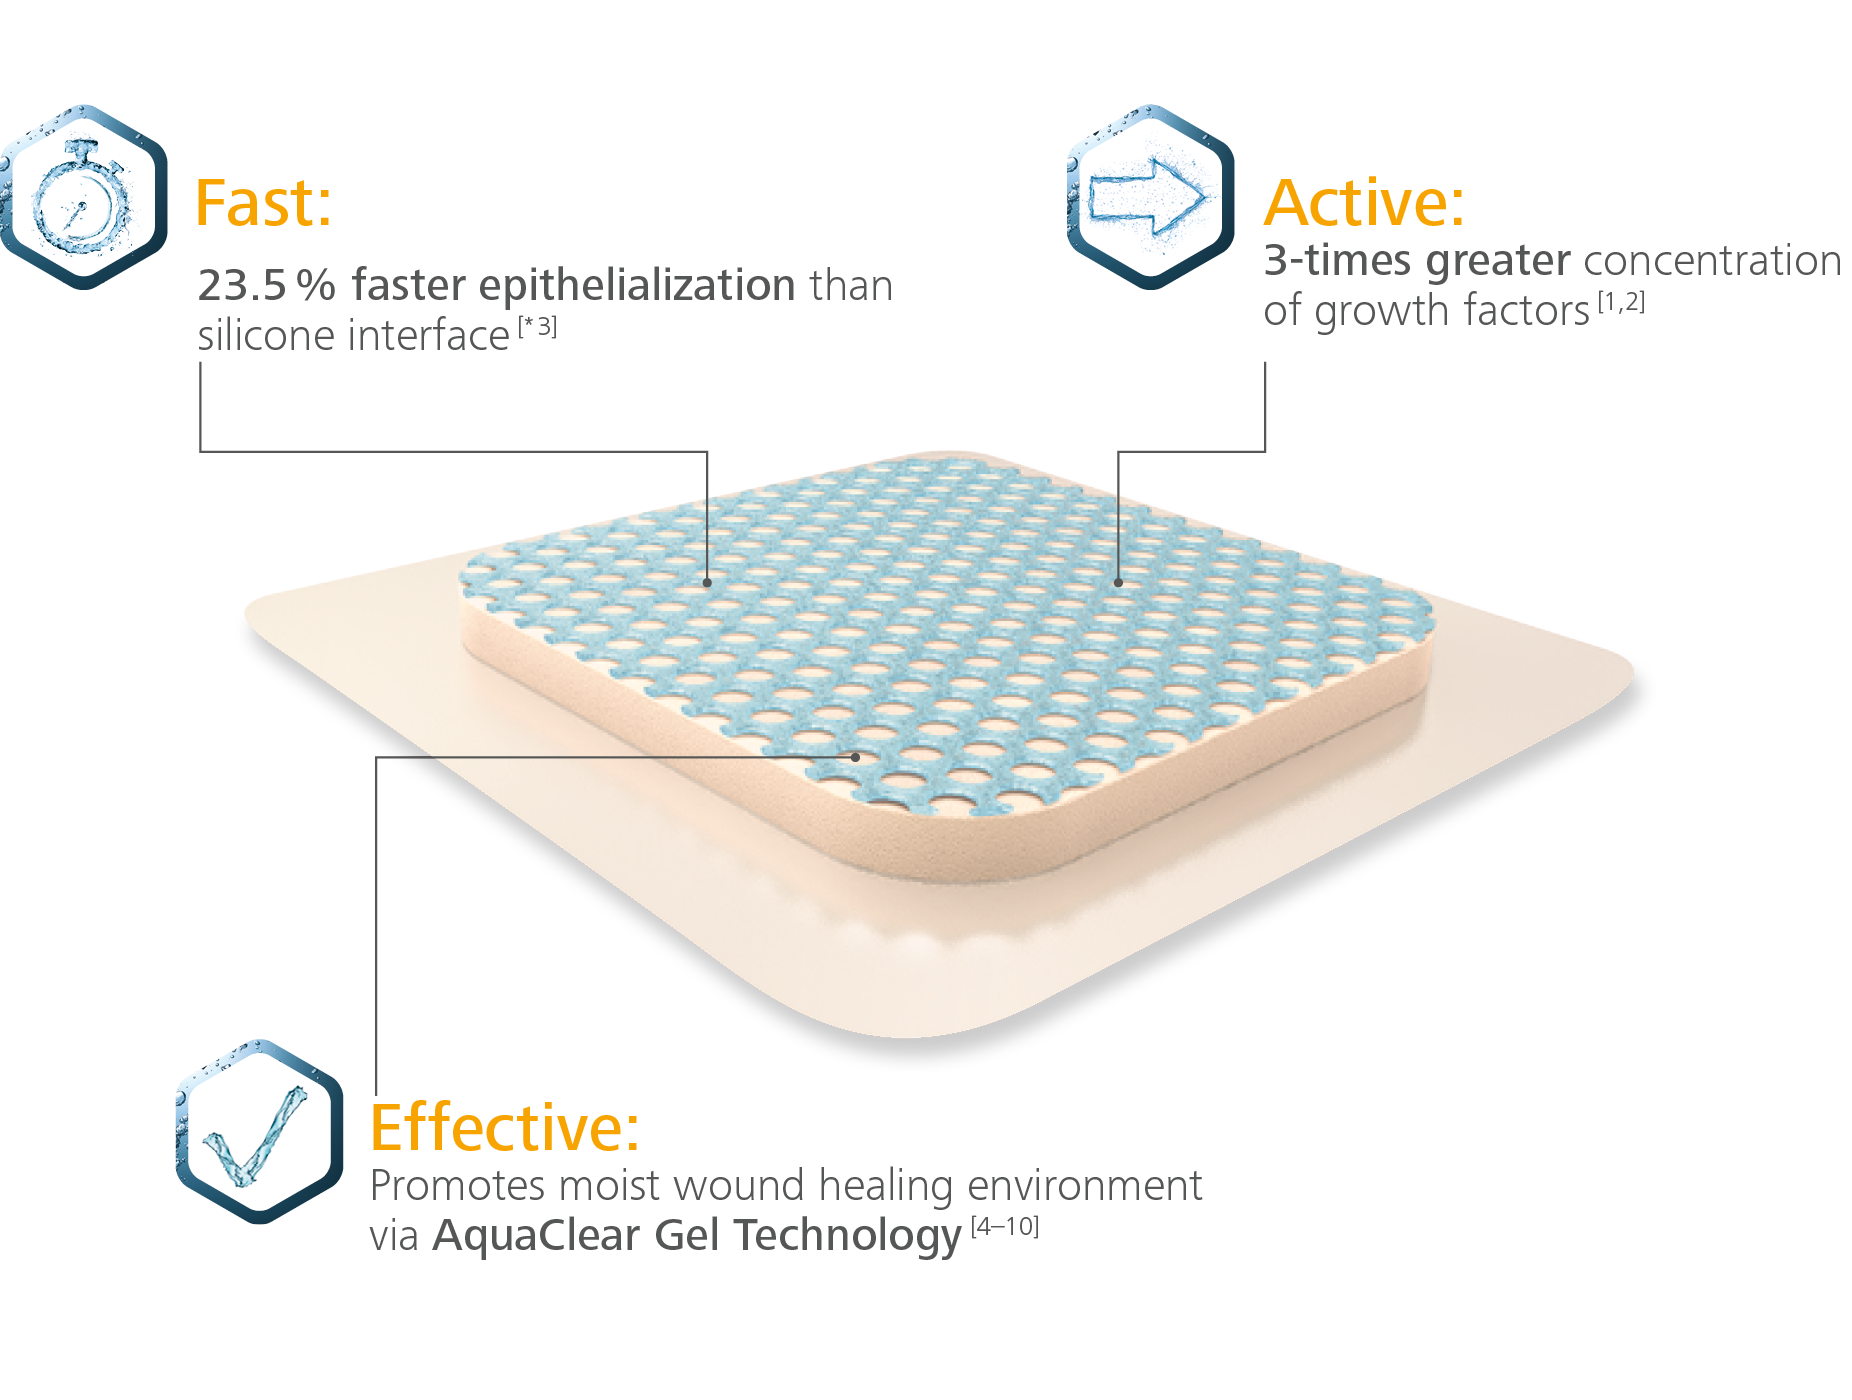 Graph describing the benefits of HydroTac®